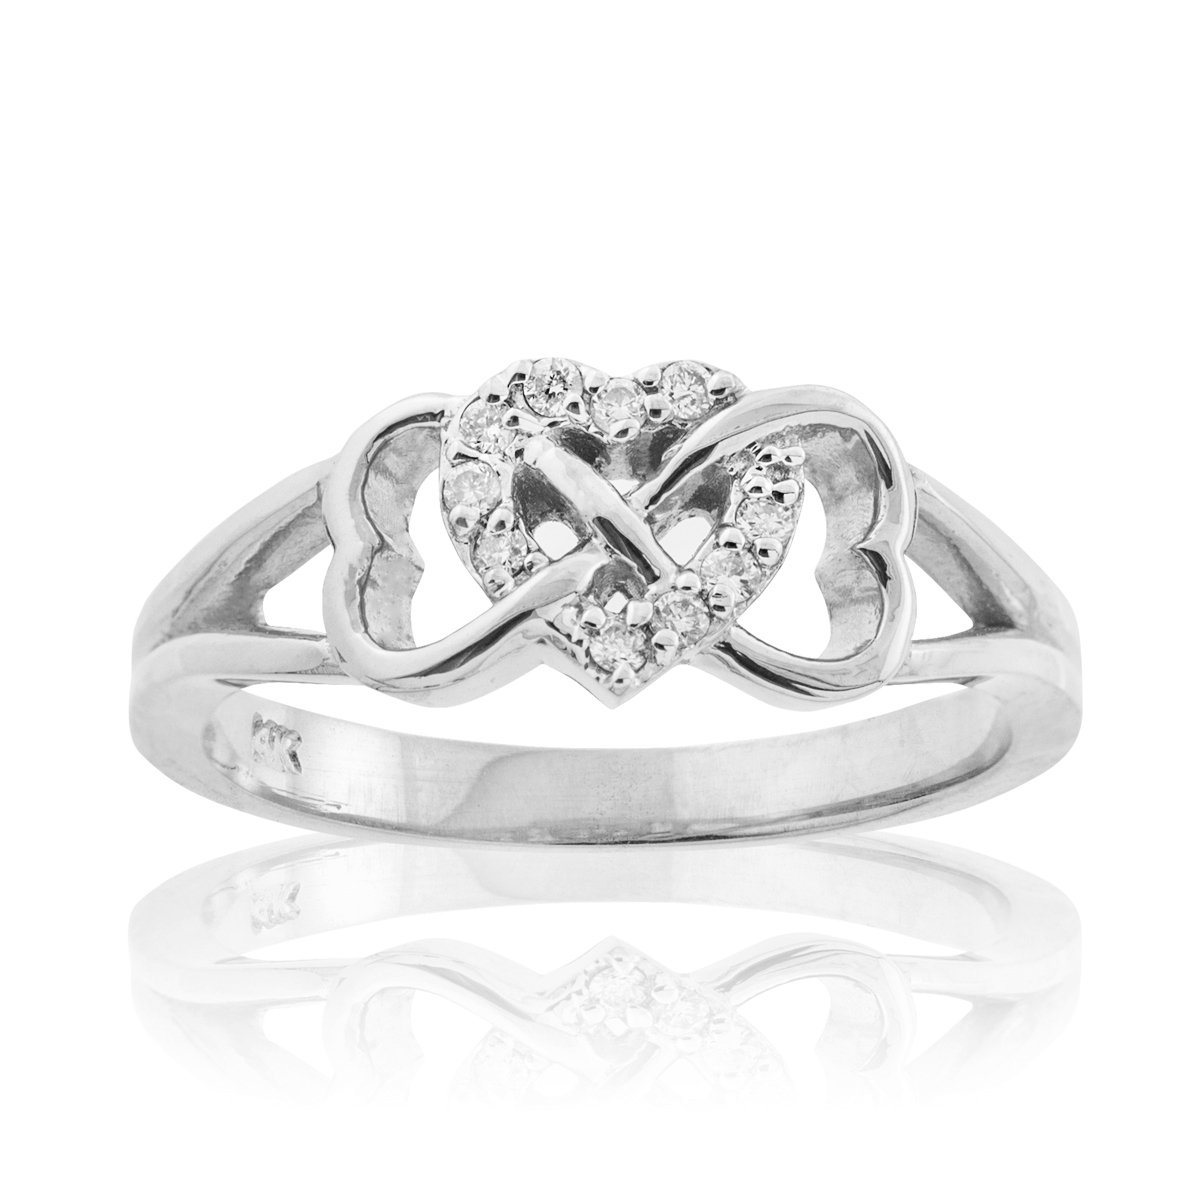 Solid 10k White Gold Diamond Triple Heart Infinity Ring (Size 8.5) by Unknown (Image #1)